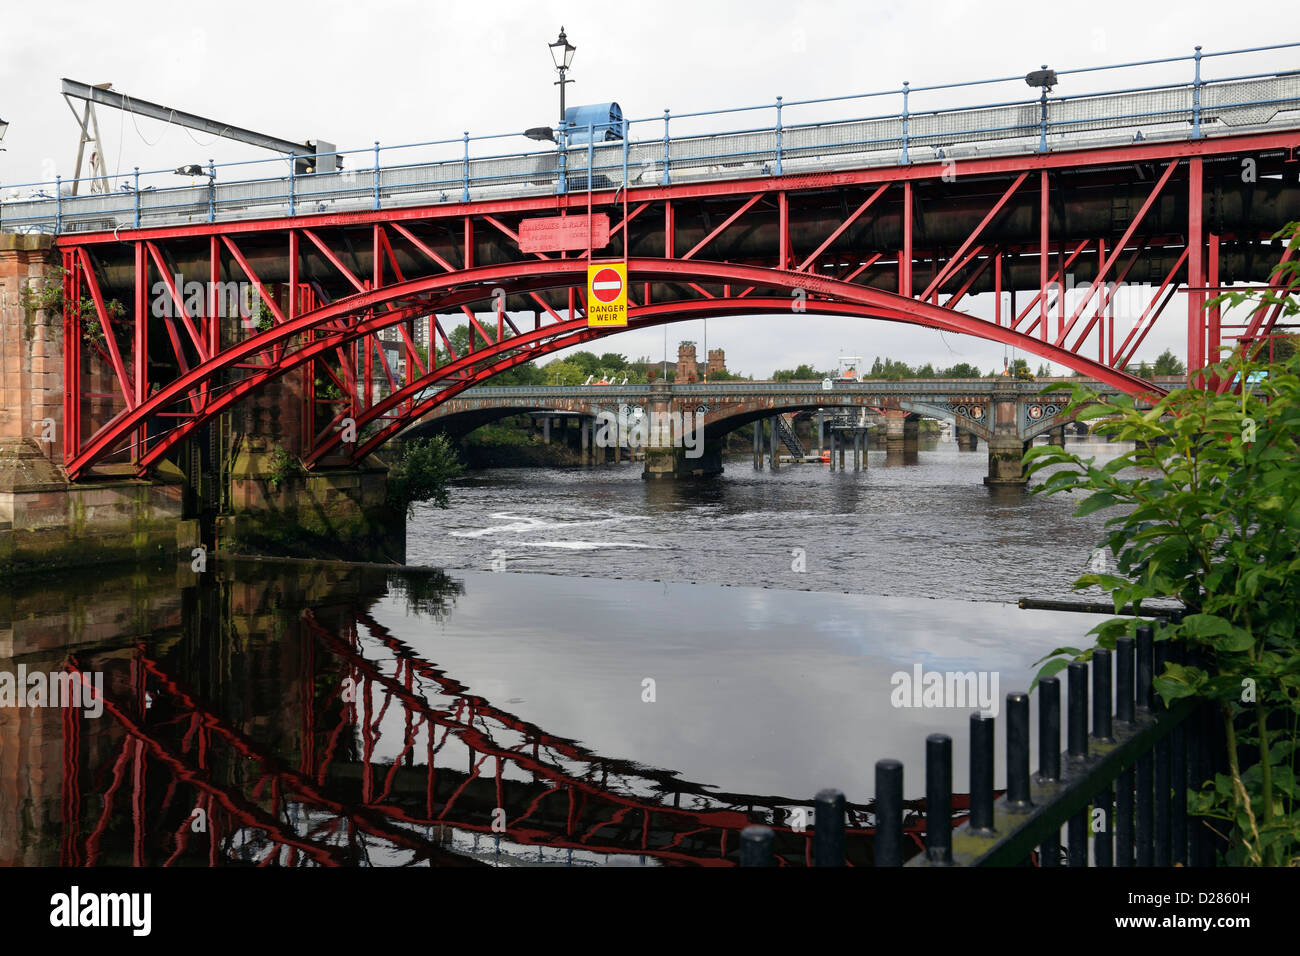 View West along the River Clyde to the Pipe Bridge and Tidal Weir, Glasgow, Scotland, UK - Stock Image